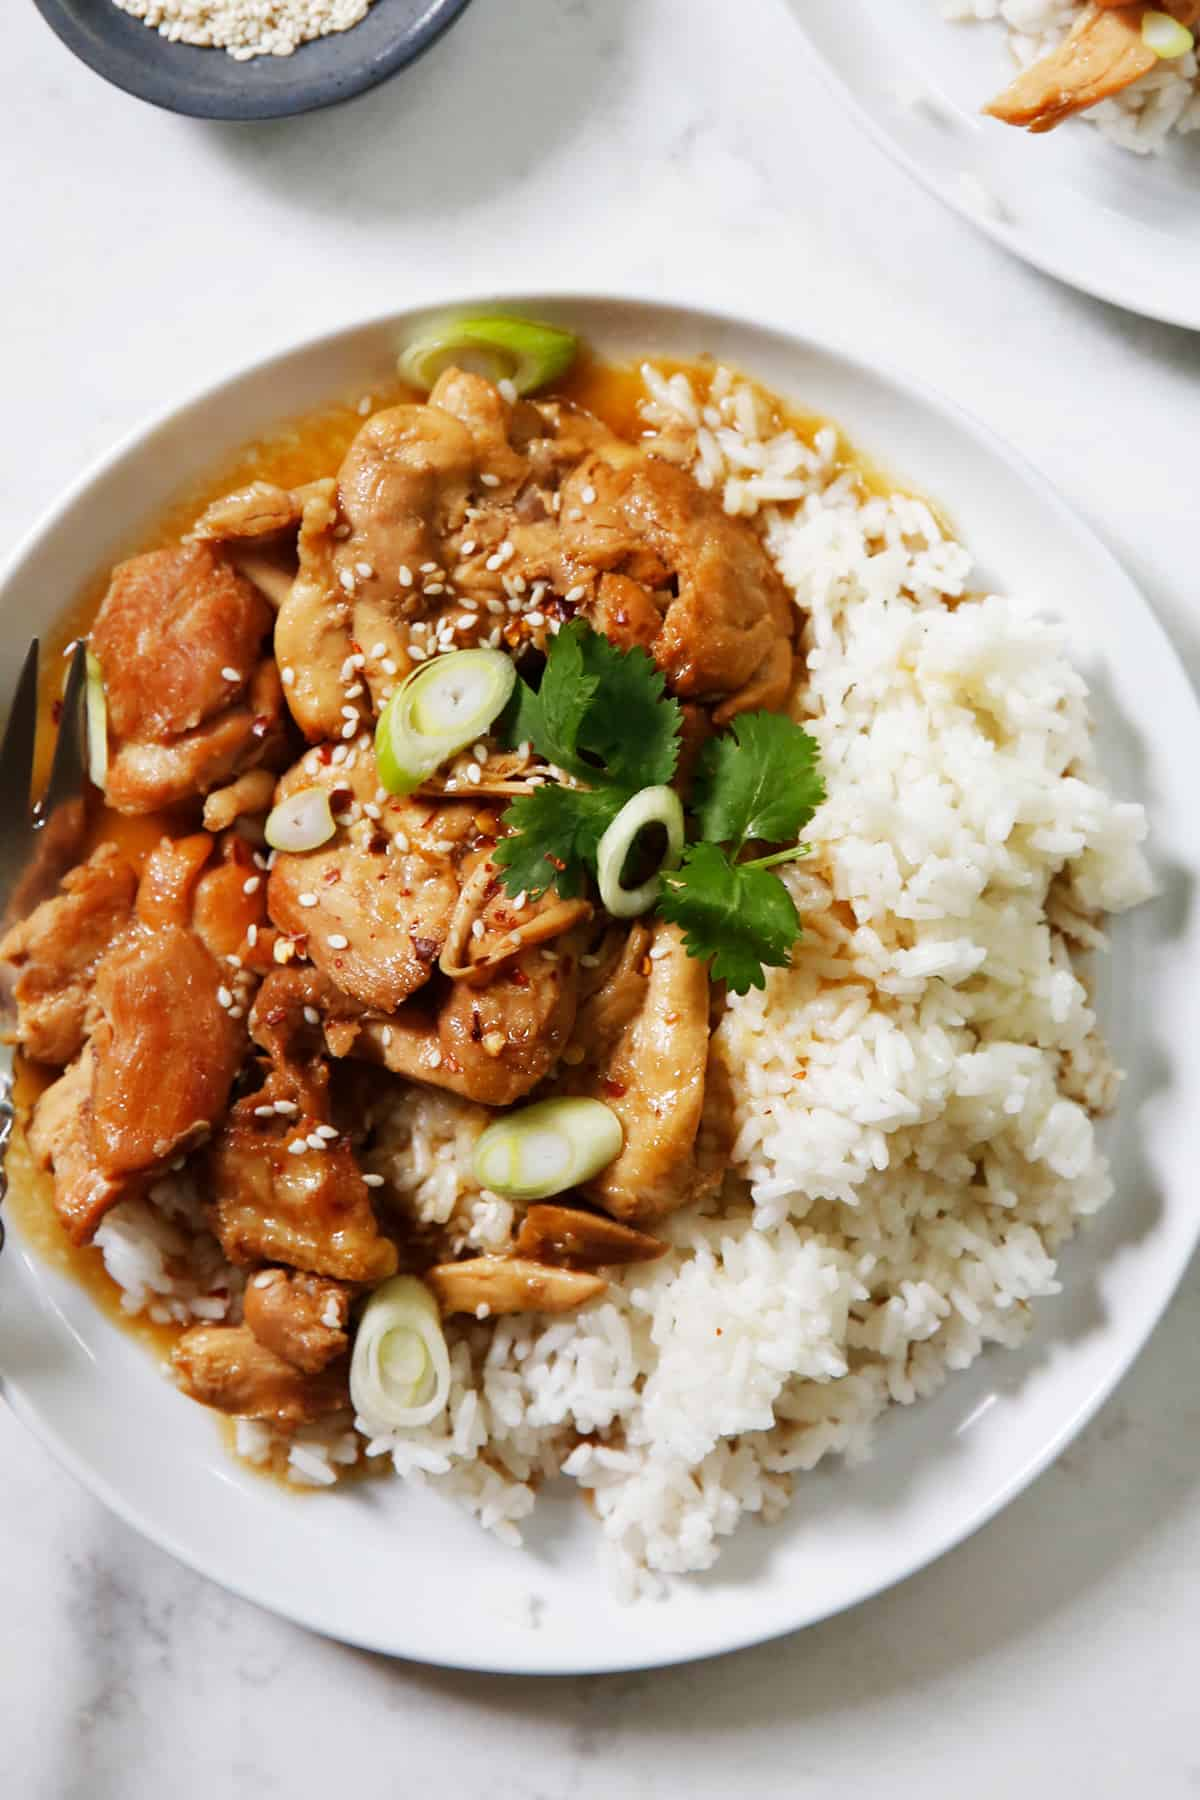 Chicken teriyaki recipe cooked in the instant pot